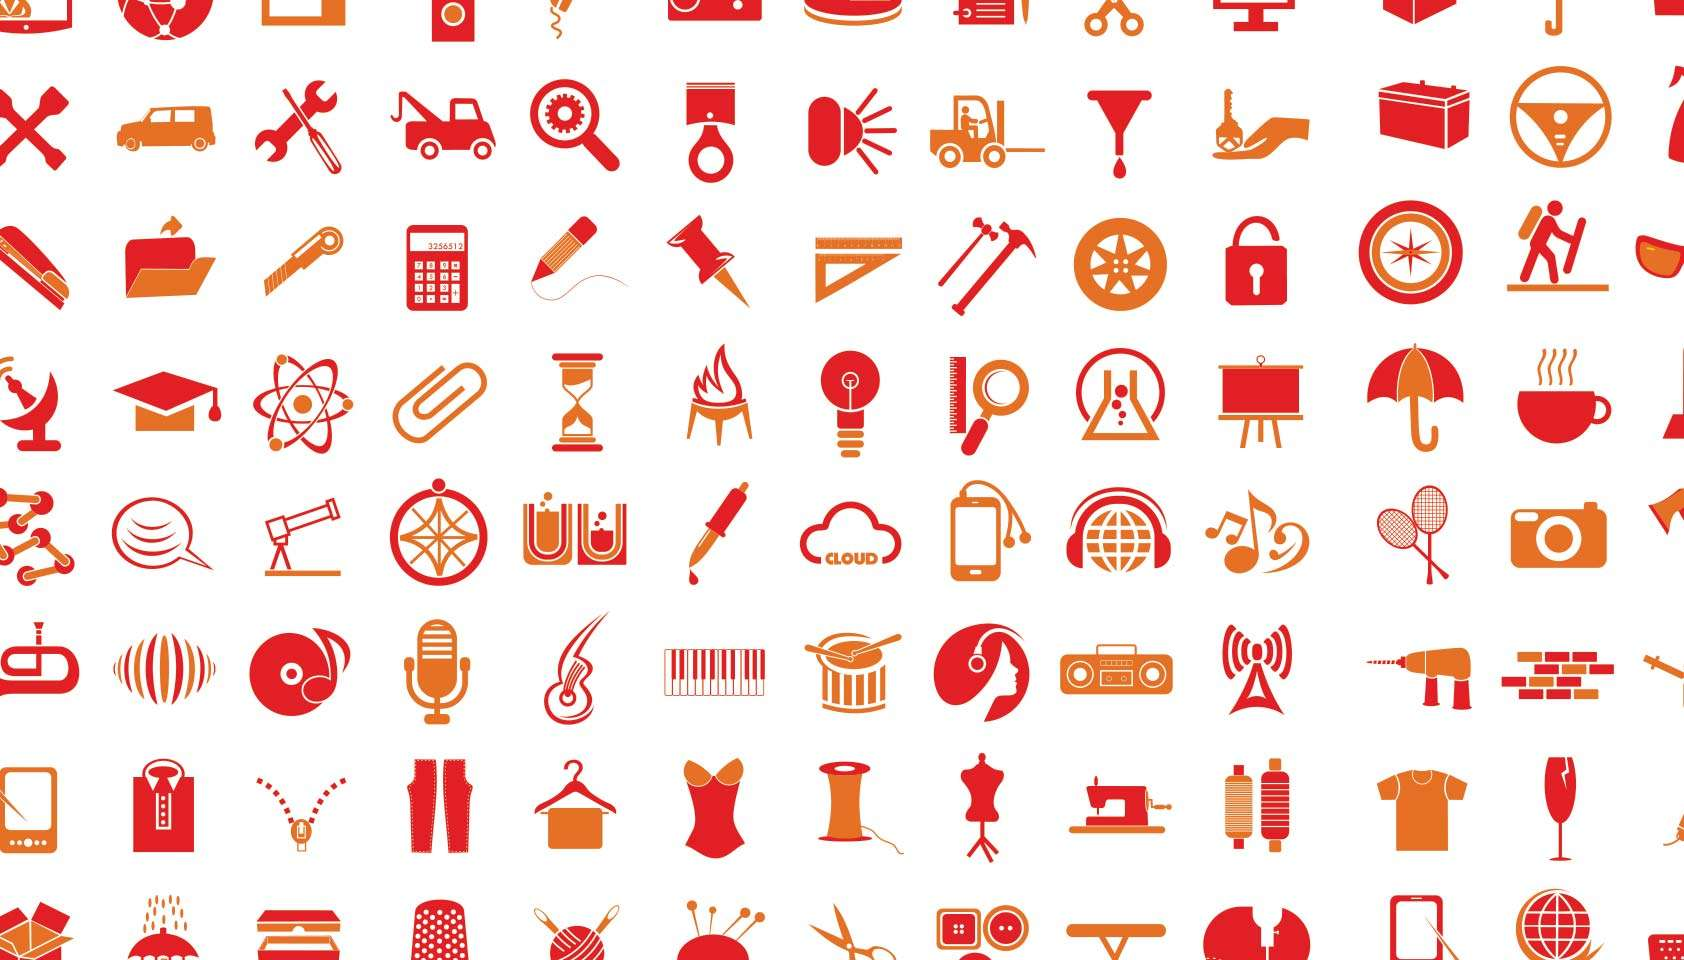 12 Gallery Icon Vector Images